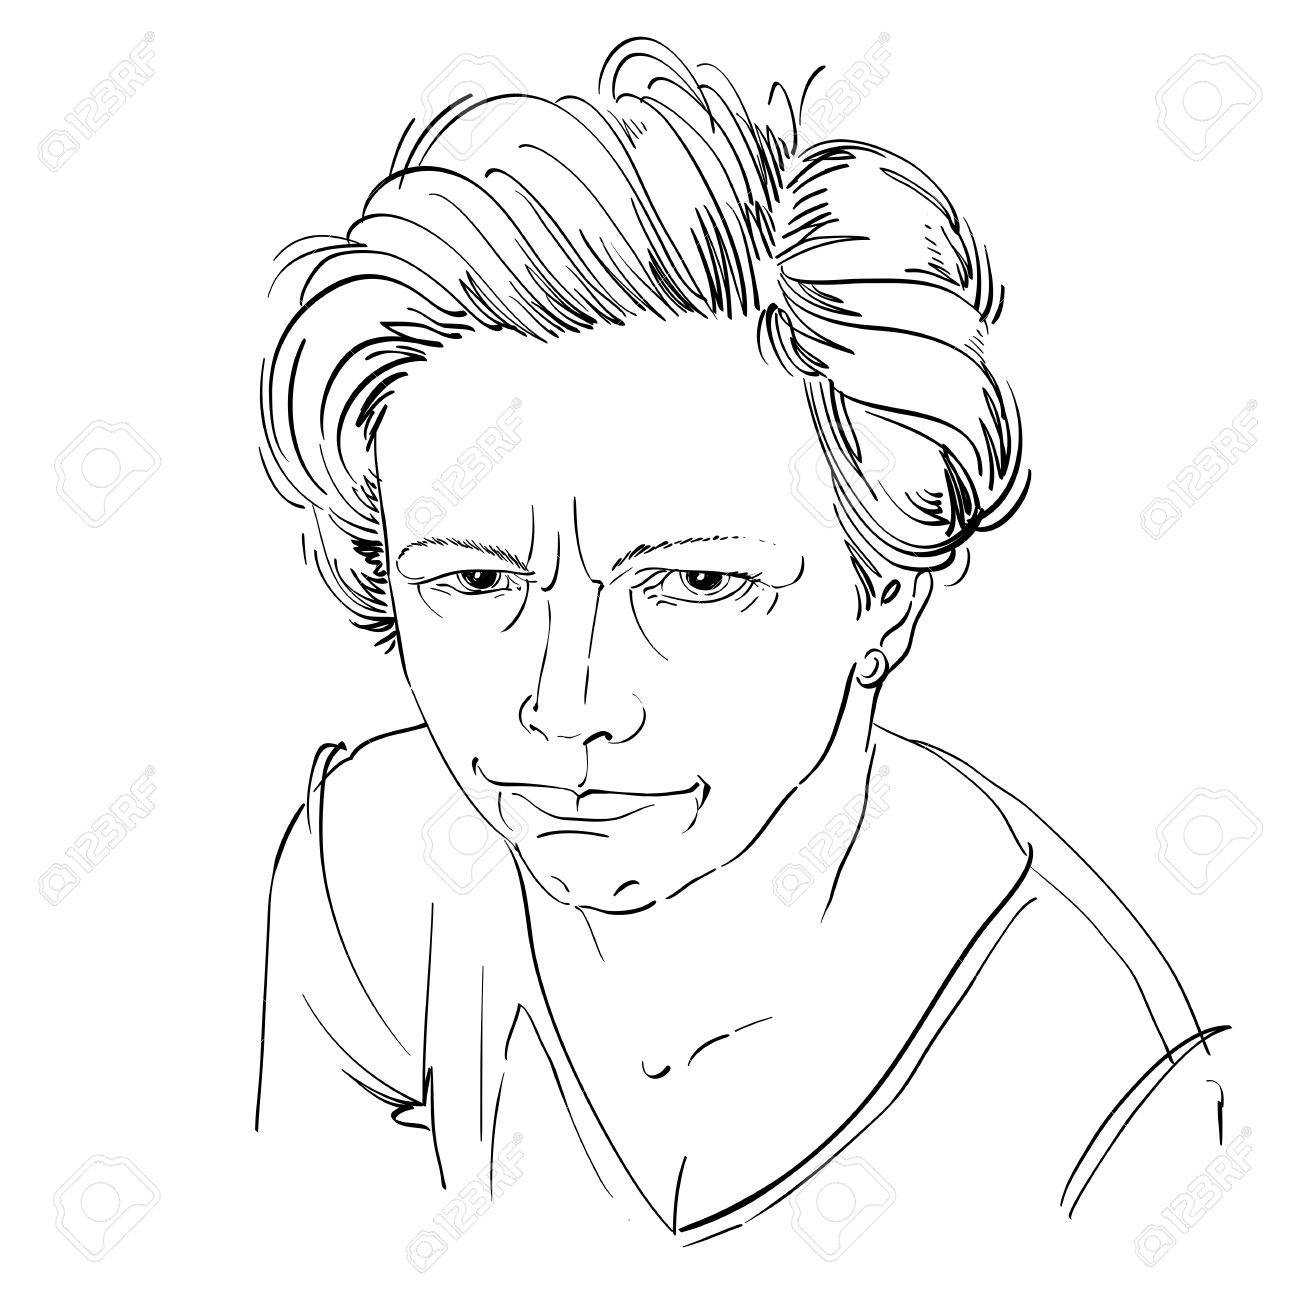 1300x1300 Art Drawing, Portrait Of Angry Girl Isolated On White. Facial